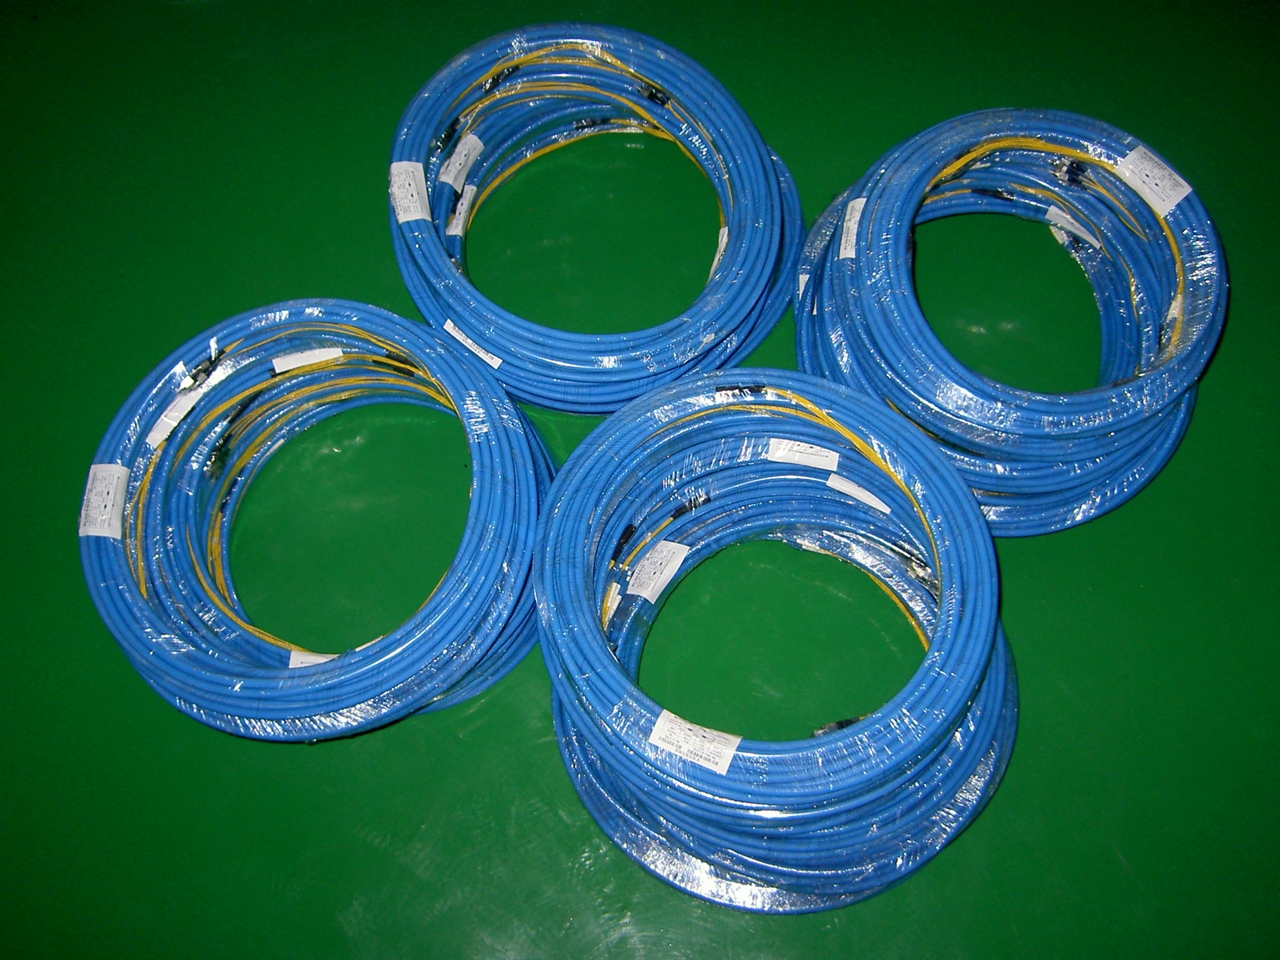 4芯矿用光缆连接器分支(4 Cores Mine Cable Branch Connectors)